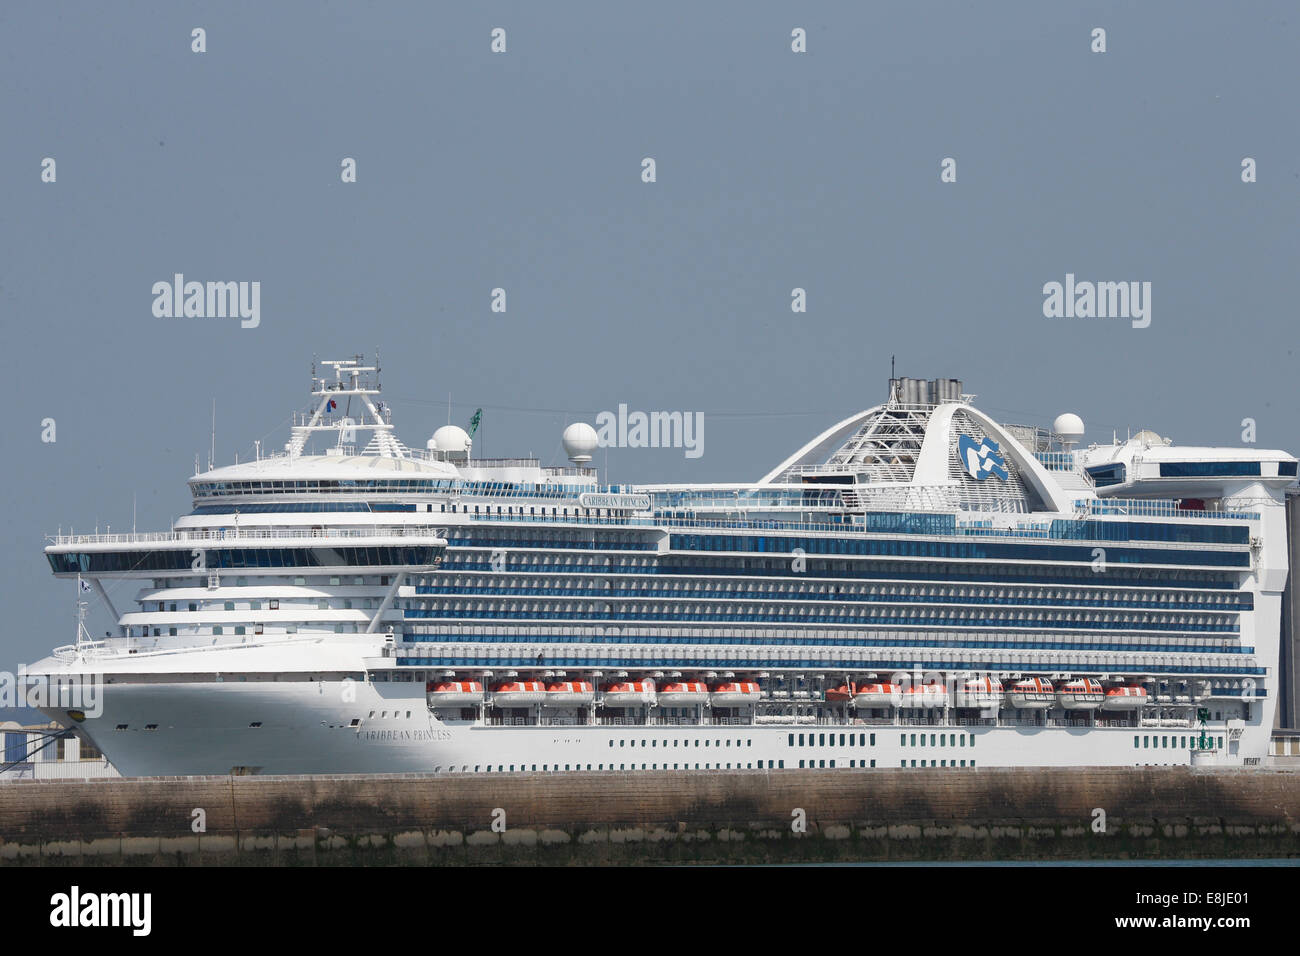 Le Havre harbour. Liner. - Stock Image